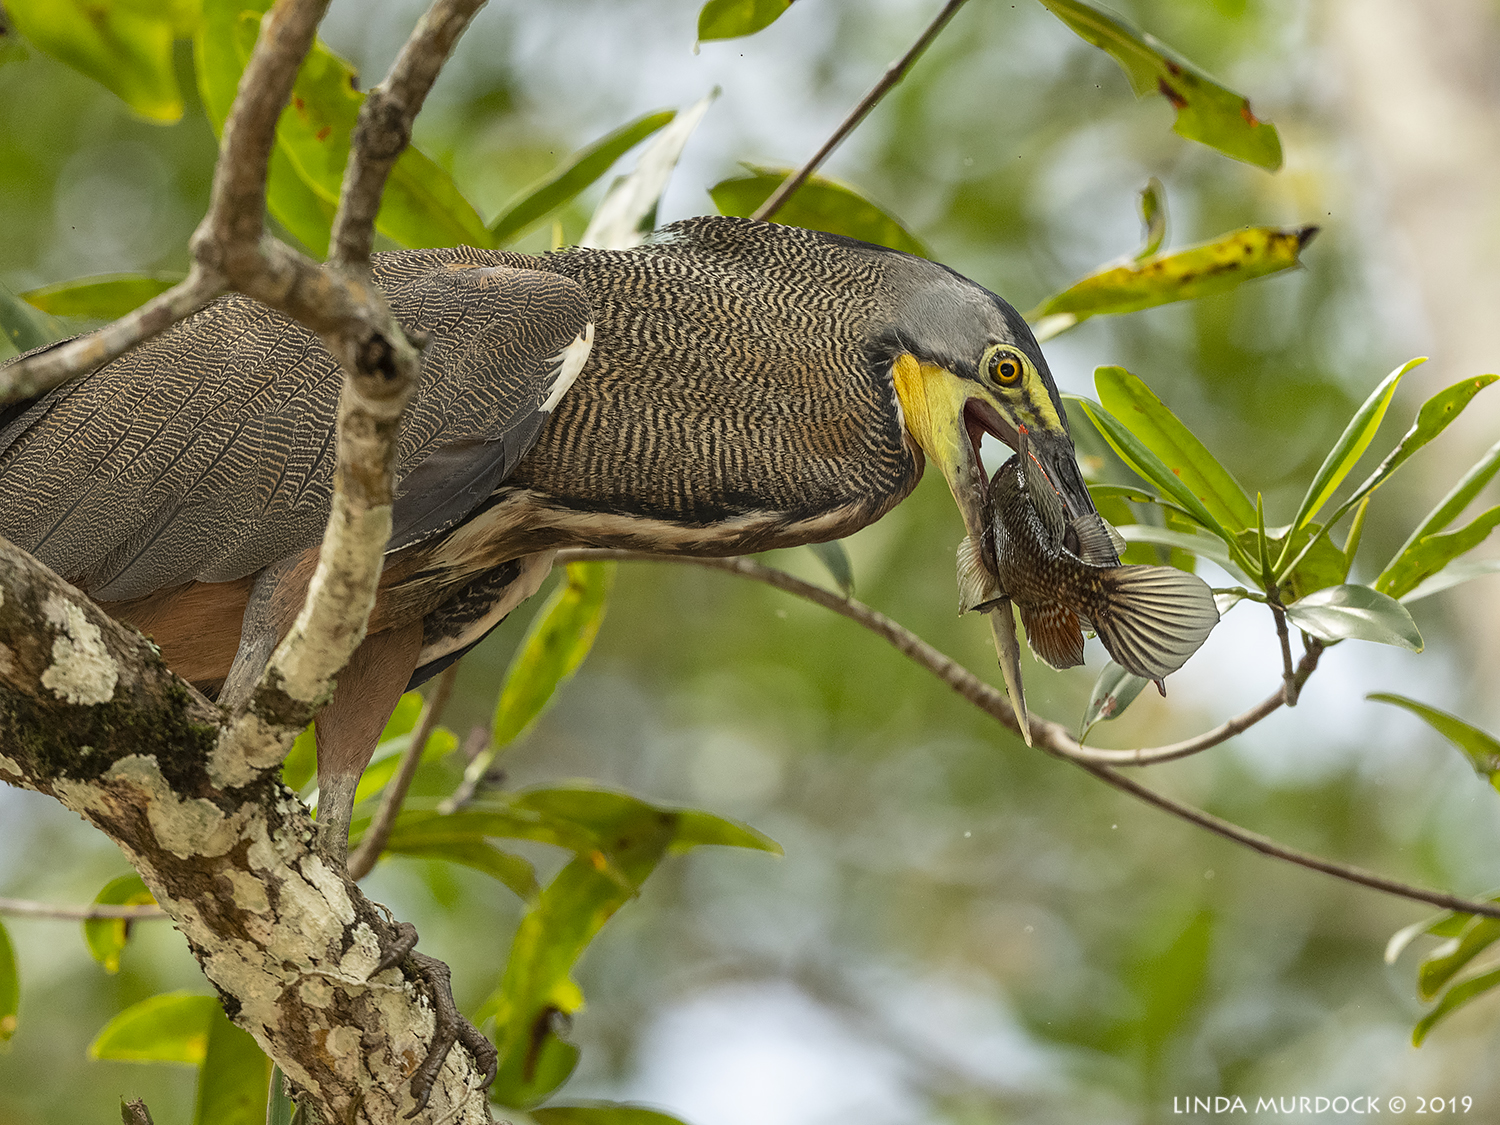 Bare-throated Tiger Heron with fish…  Nikon D850 with Nikkor 500 f/5.6 PF ~ 1/1250 sec f/6.3 ISO 1250